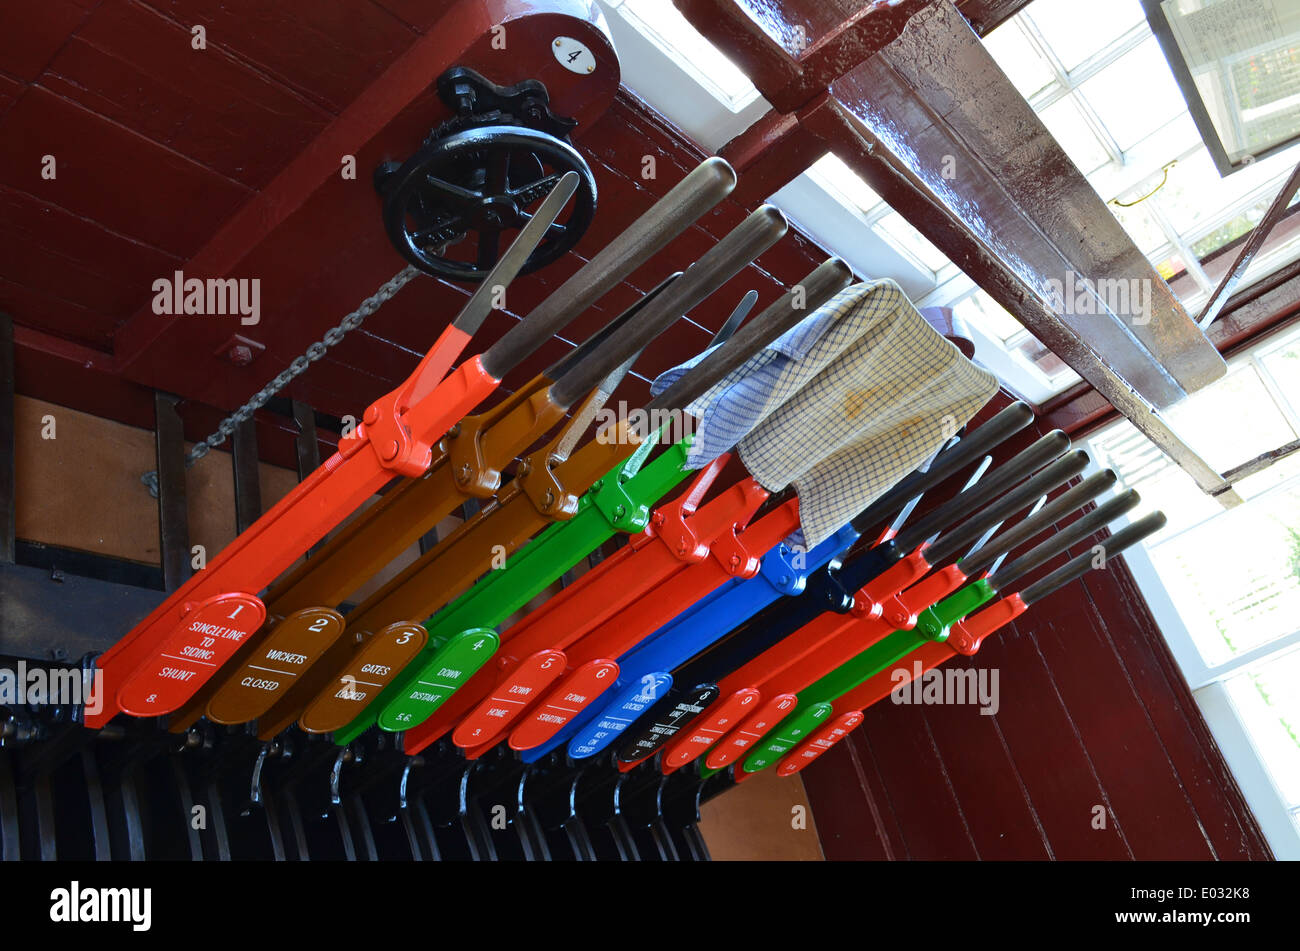 Lever Train Track : Train signal box point lever handles stock photo